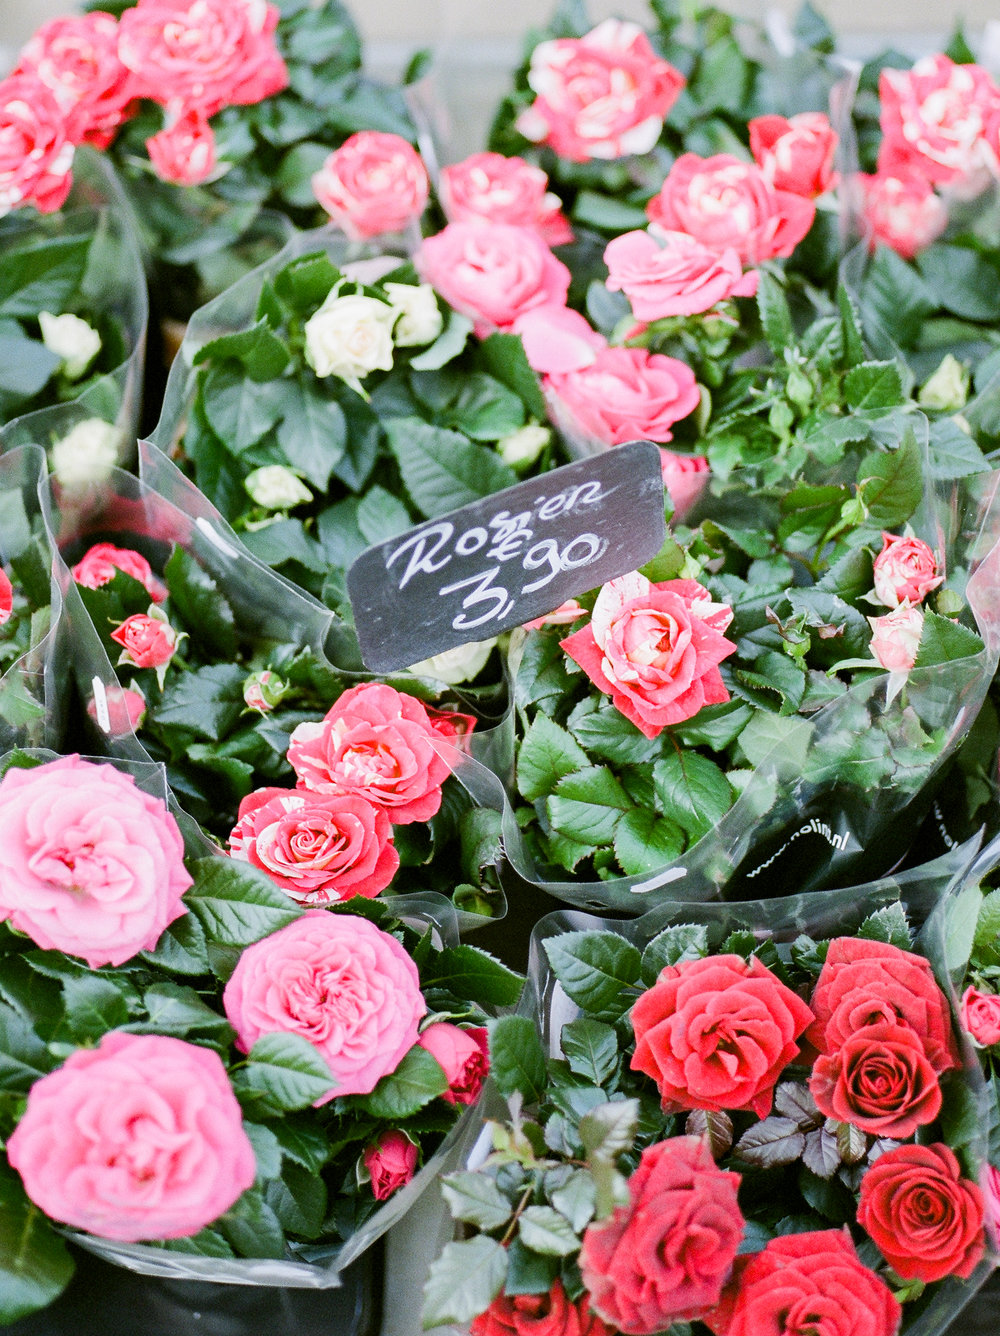 fresh-flowers-in-market-during-the-winter-in-paris.jpg